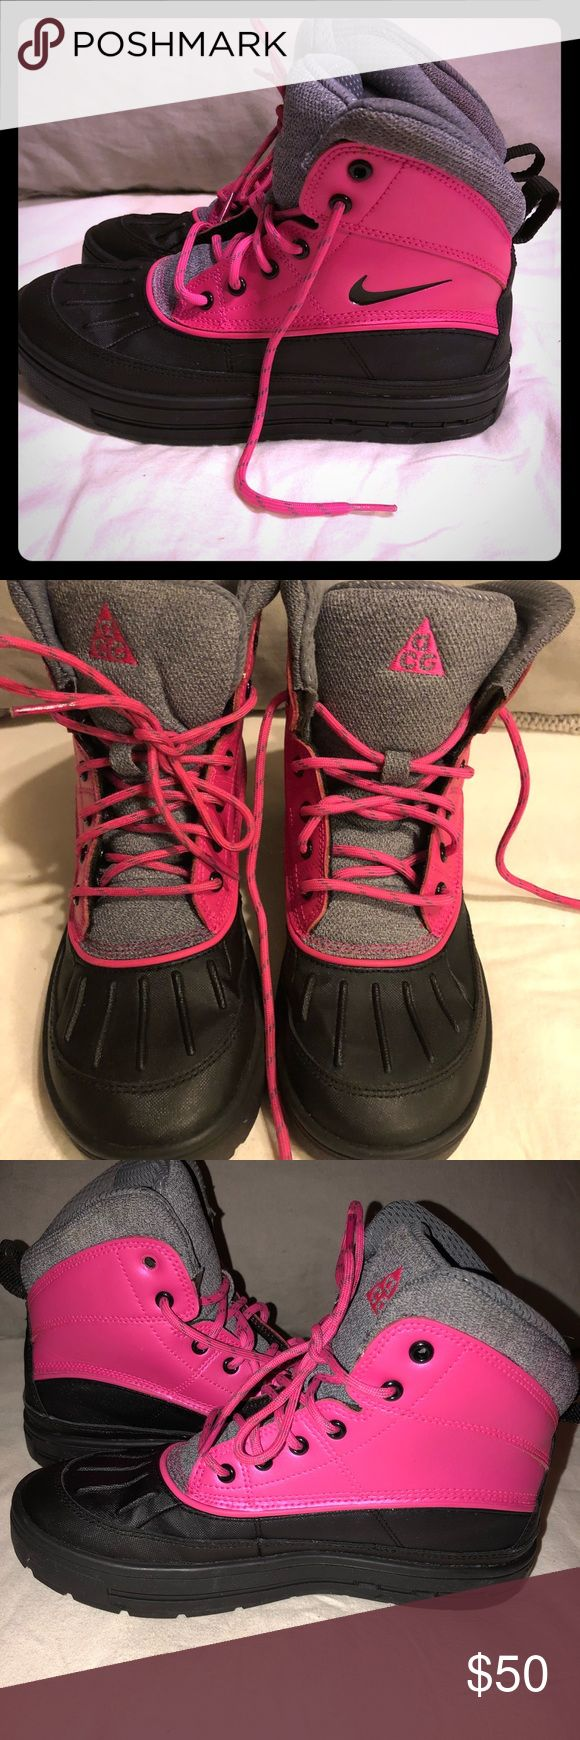 Big Kids Nike Boots Excellent condition worn a handful of times big kids size 5 Nike boots Nike Shoes